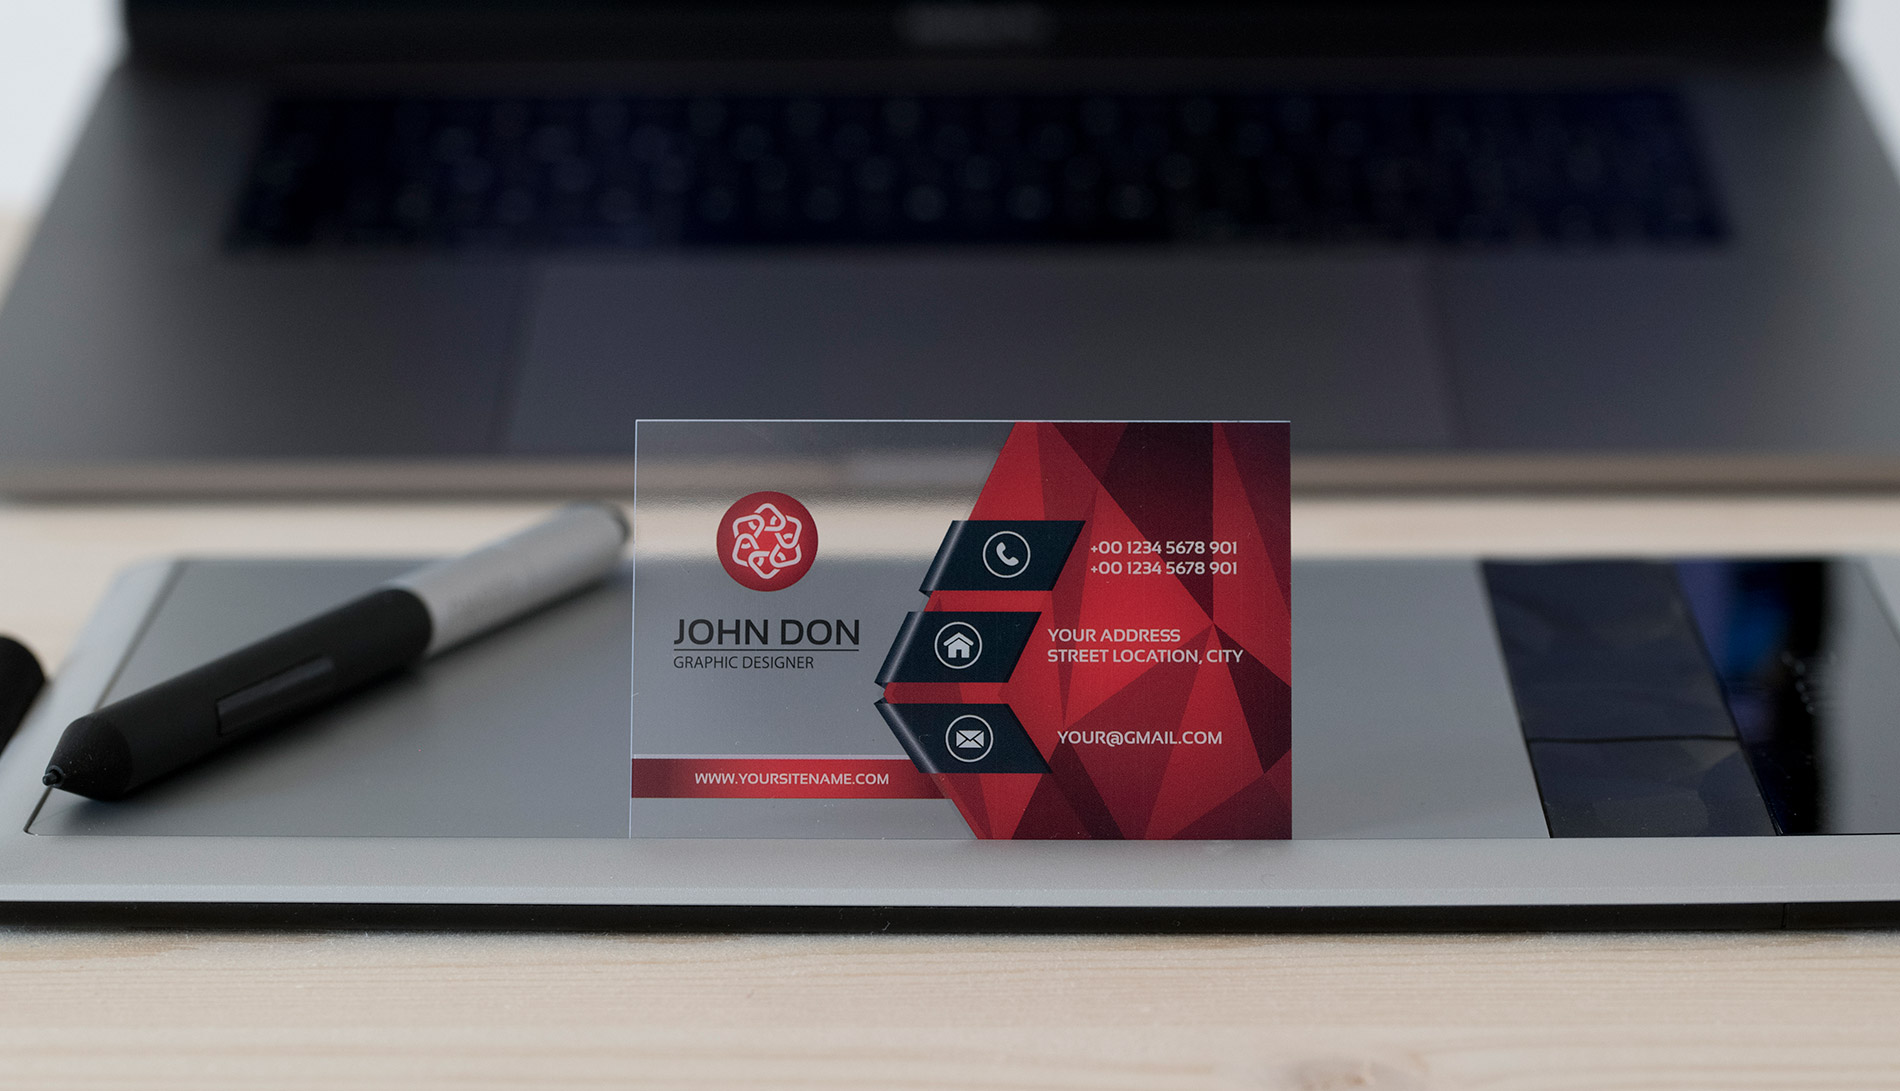 Business card suitable for engineers, architects, visual designers in transparent 400 micron clear PVC with red graphics and white lettering, offset-uv printed from CREA TO PRINT.